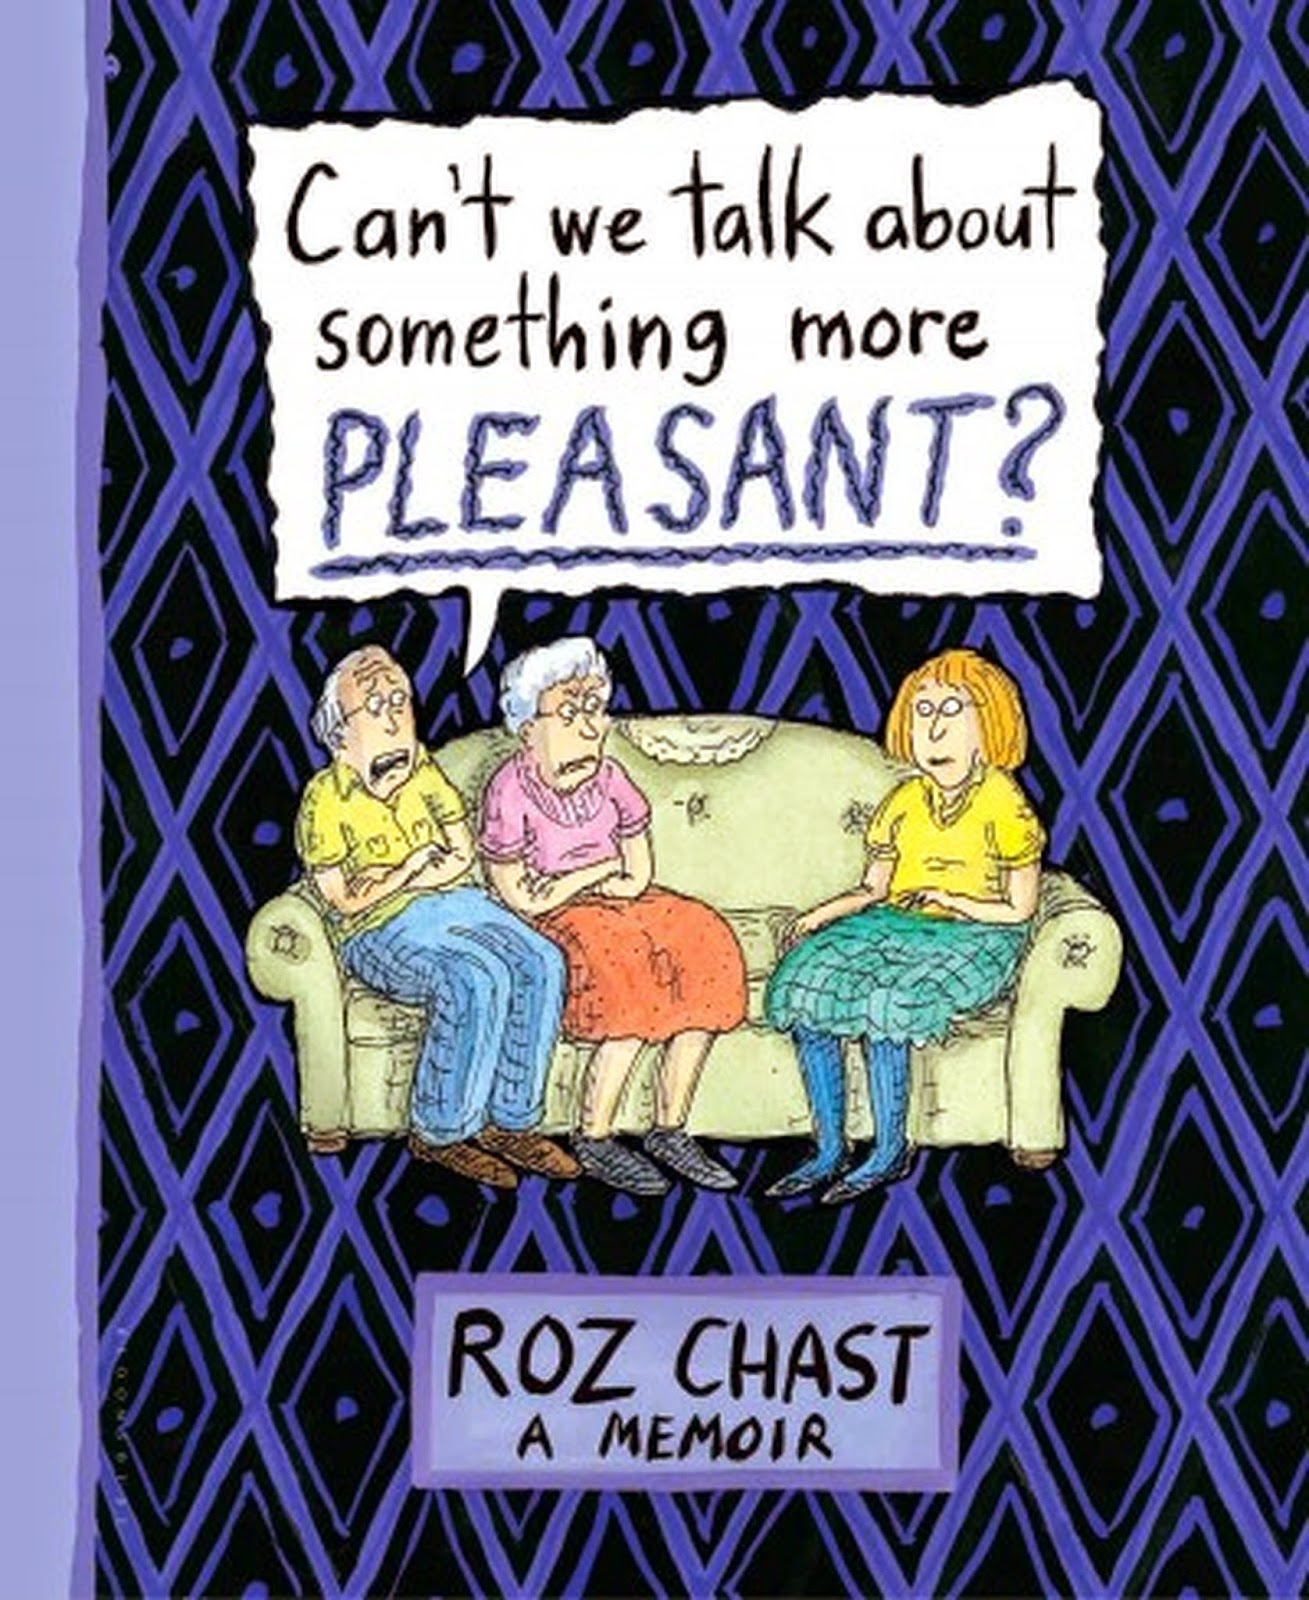 http://www.amazon.com/Cant-Talk-about-Something-Pleasant/dp/1608198065/ref=sr_1_1?s=books&ie=UTF8&qid=1420044445&sr=1-1&keywords=roz+chast+can%27t+we+talk+about+something+more+pleasant